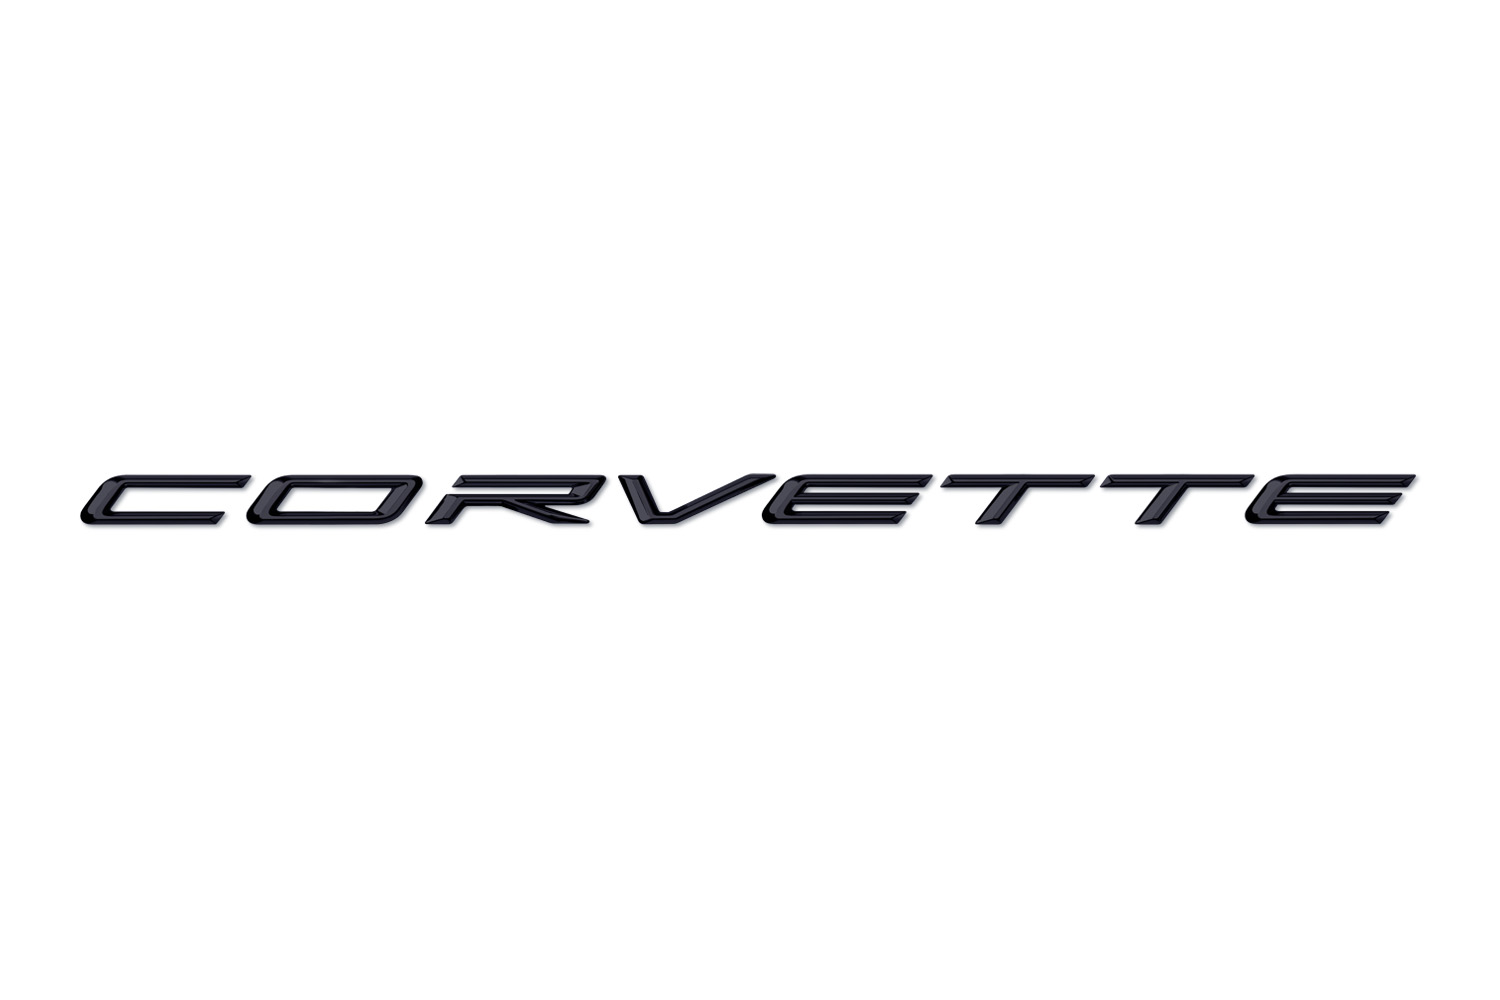 2020 Corvette Signature in Carbon Script on White